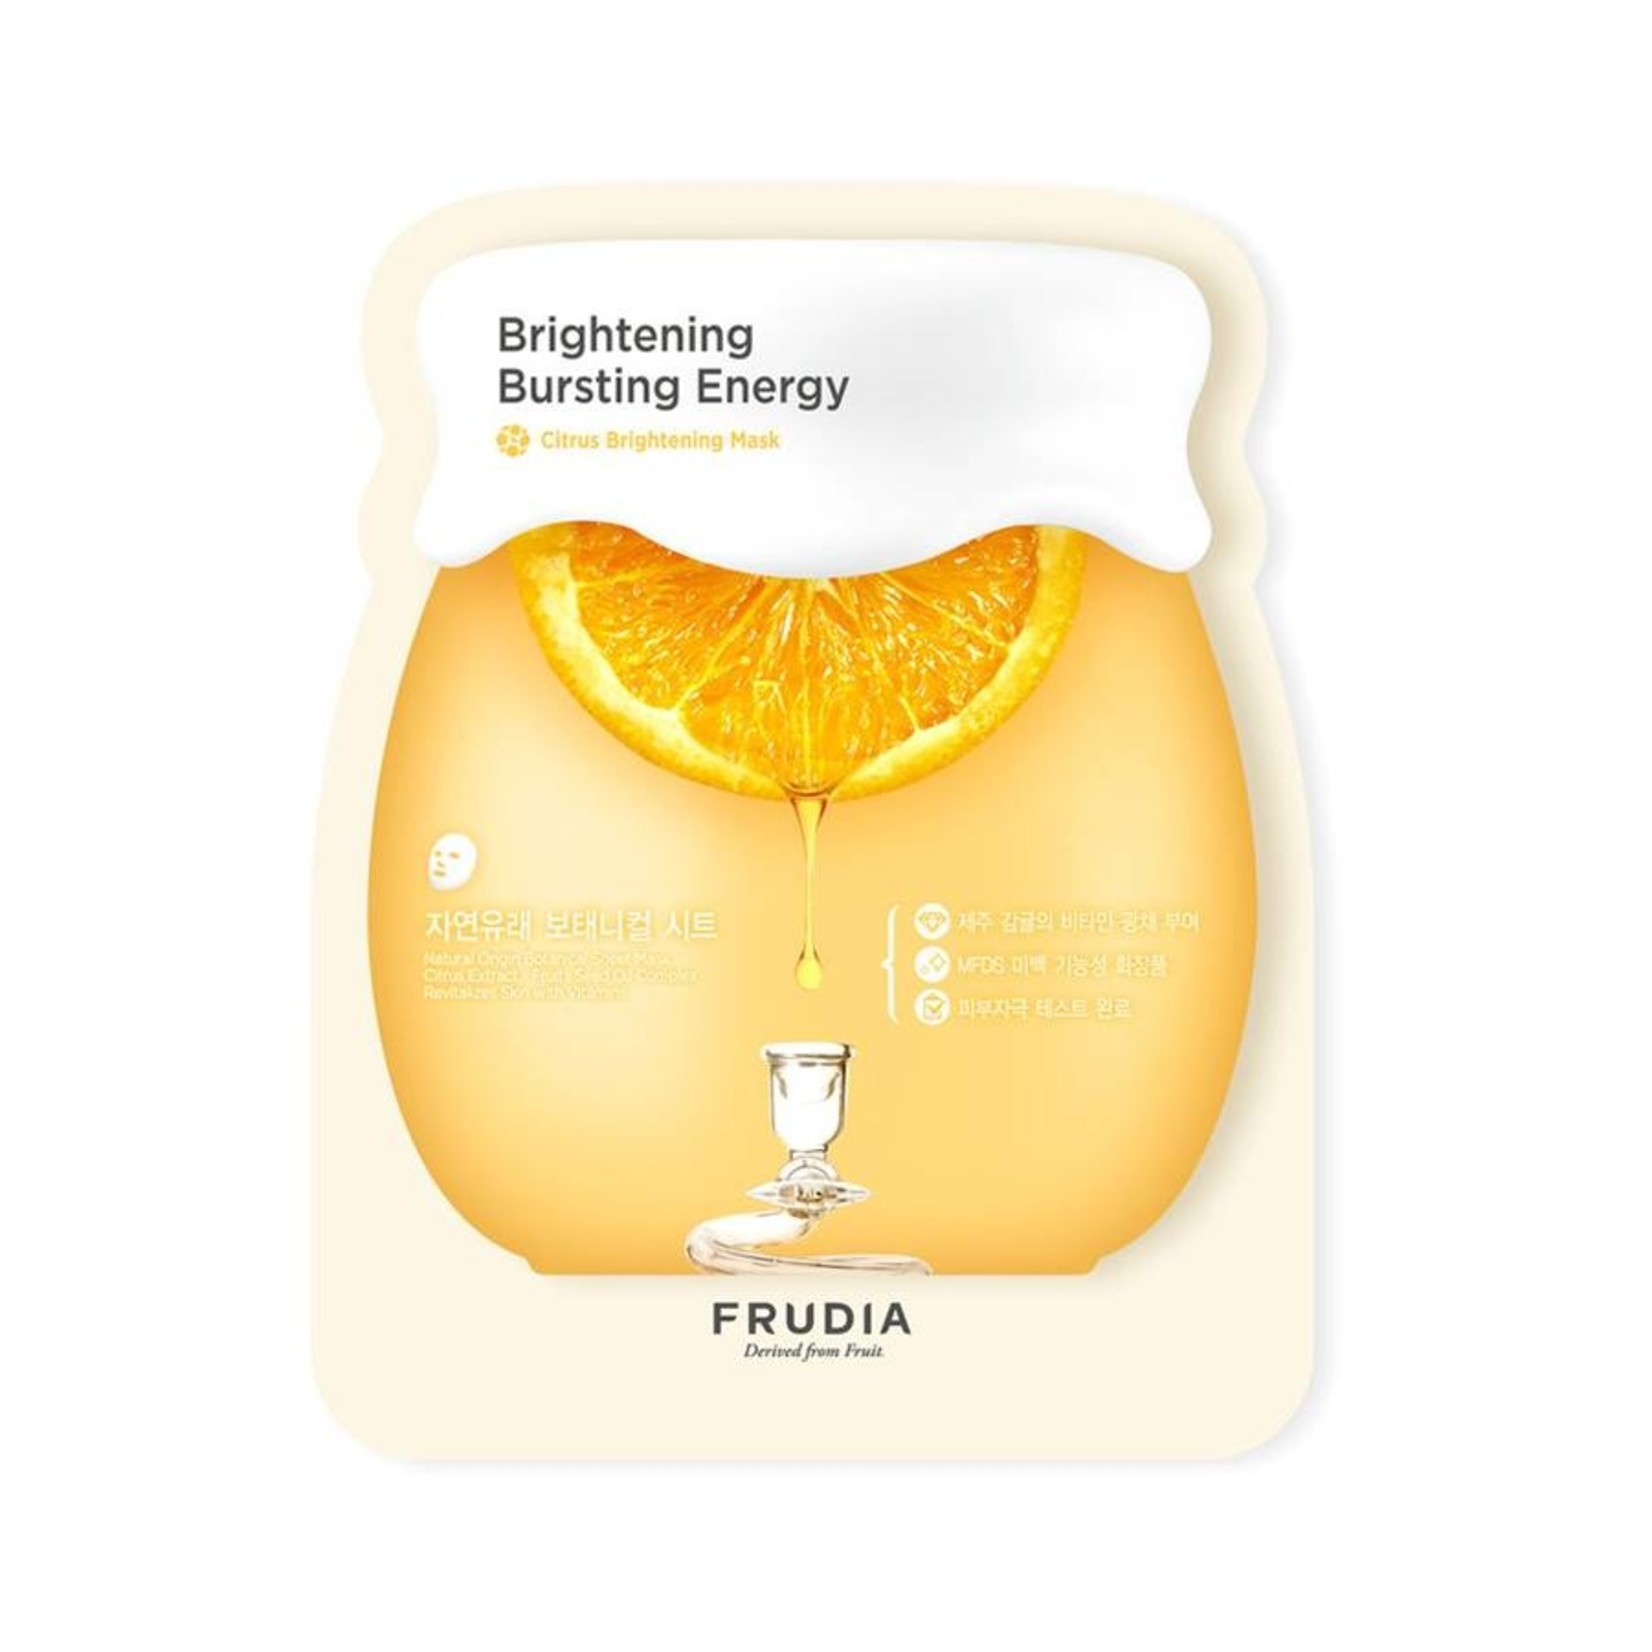 Frudia Citrus Brightening Mask 10pcs